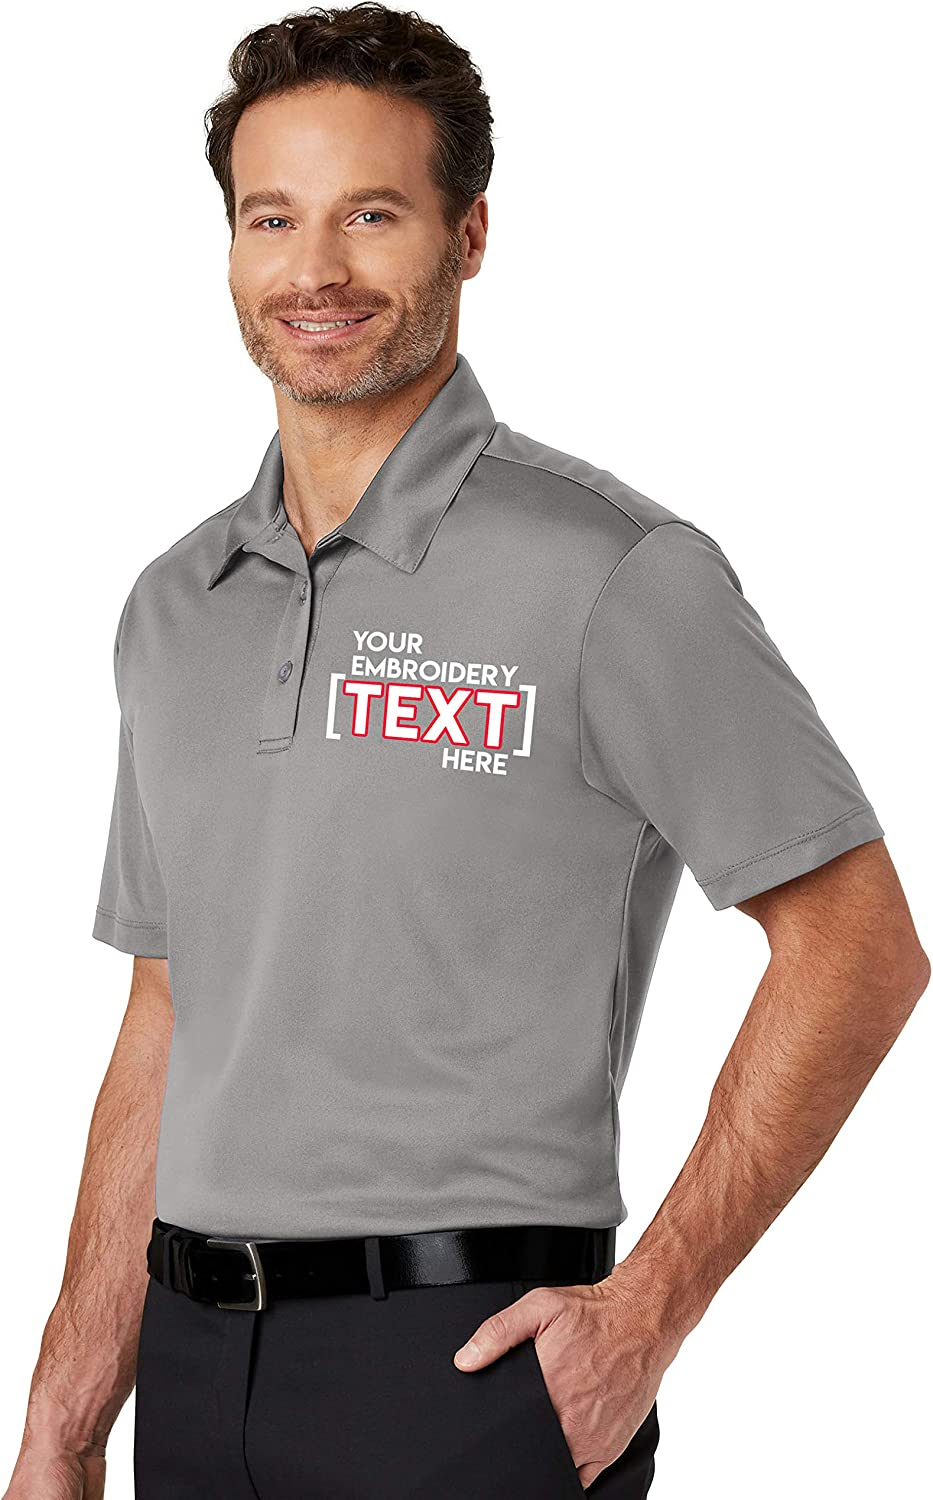 Custom Embroidered Shirts for Men /& Women Personalized Embroidery Polyester Polos